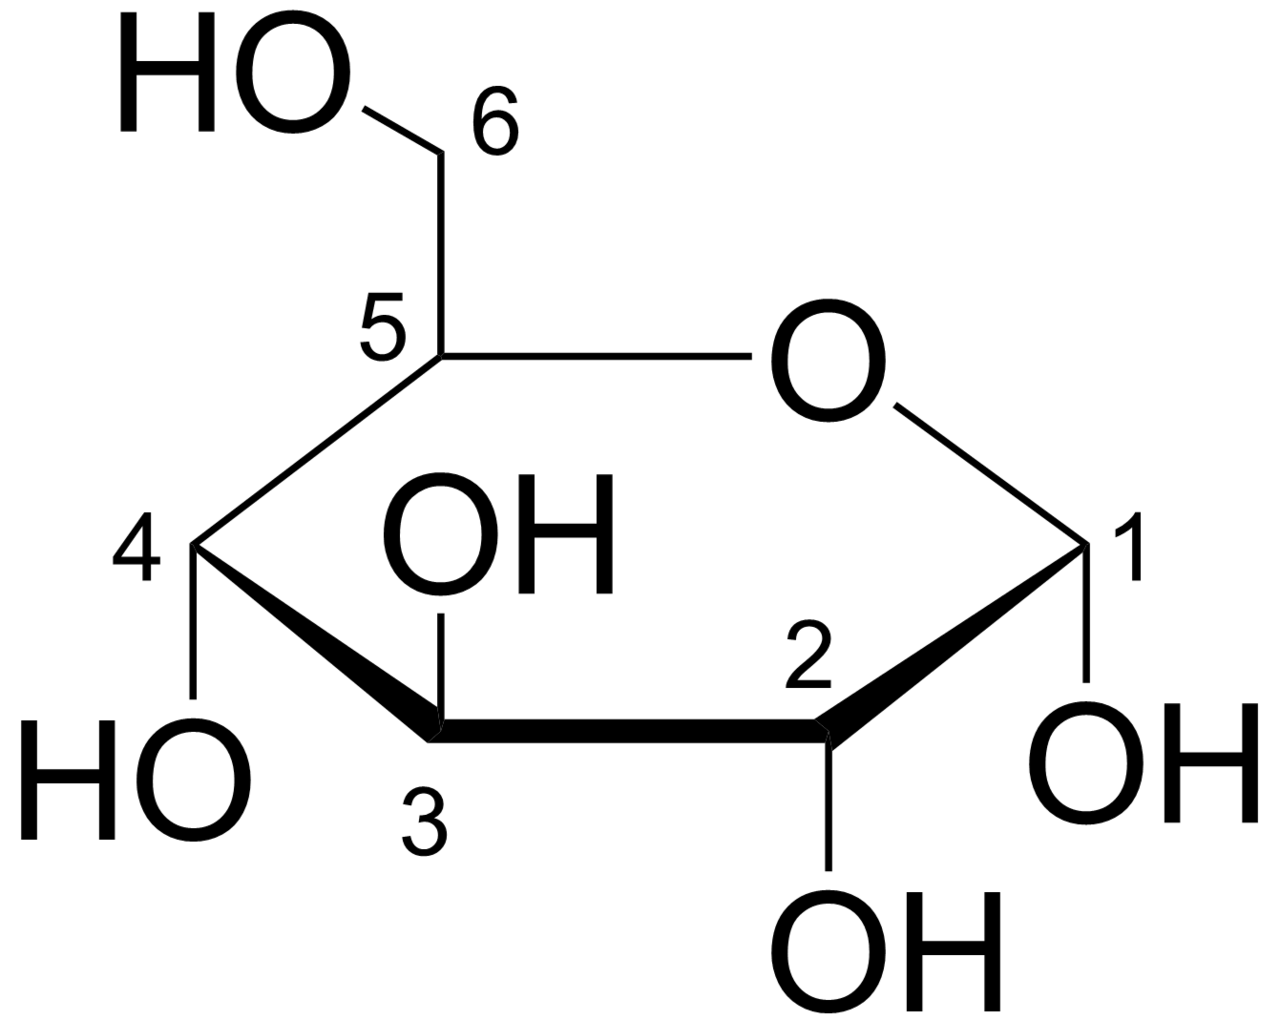 File:Glucose Haworth.png - Wikimedia Commons